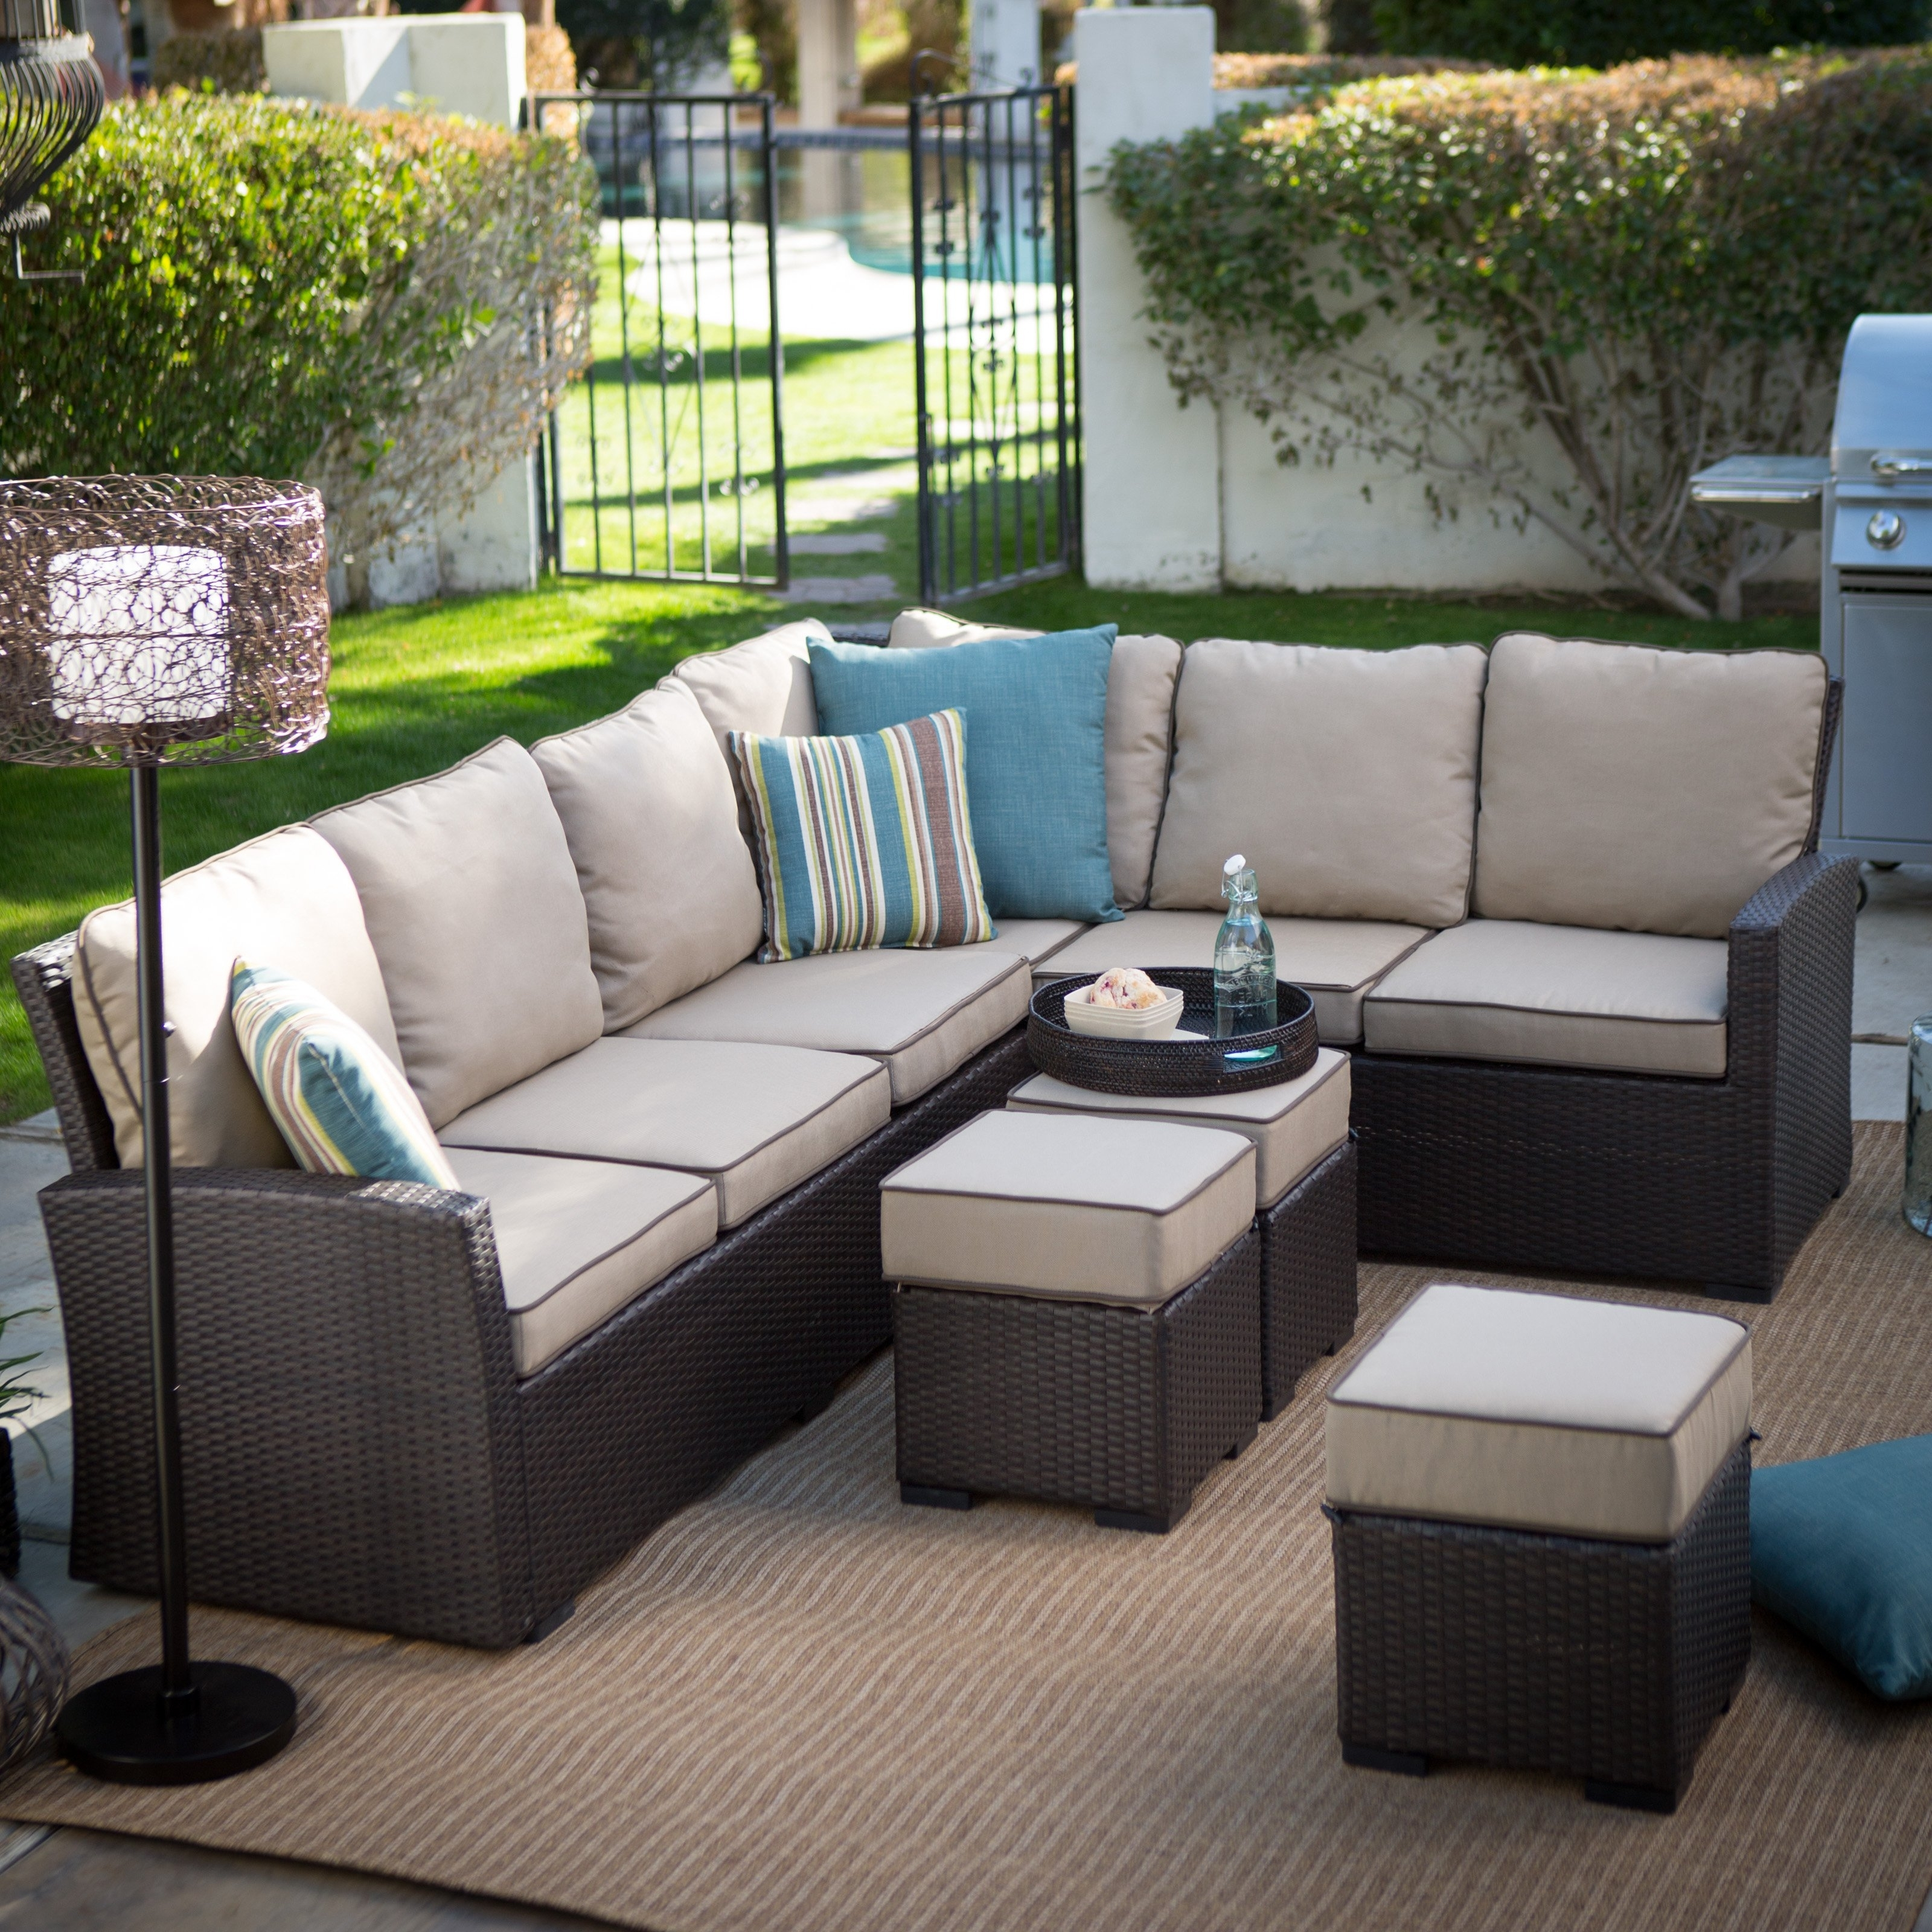 Widely Used Conversation Patio Sets With Outdoor Sectionals With Belham Living Monticello All Weather Outdoor Wicker Sofa Sectional (View 15 of 15)